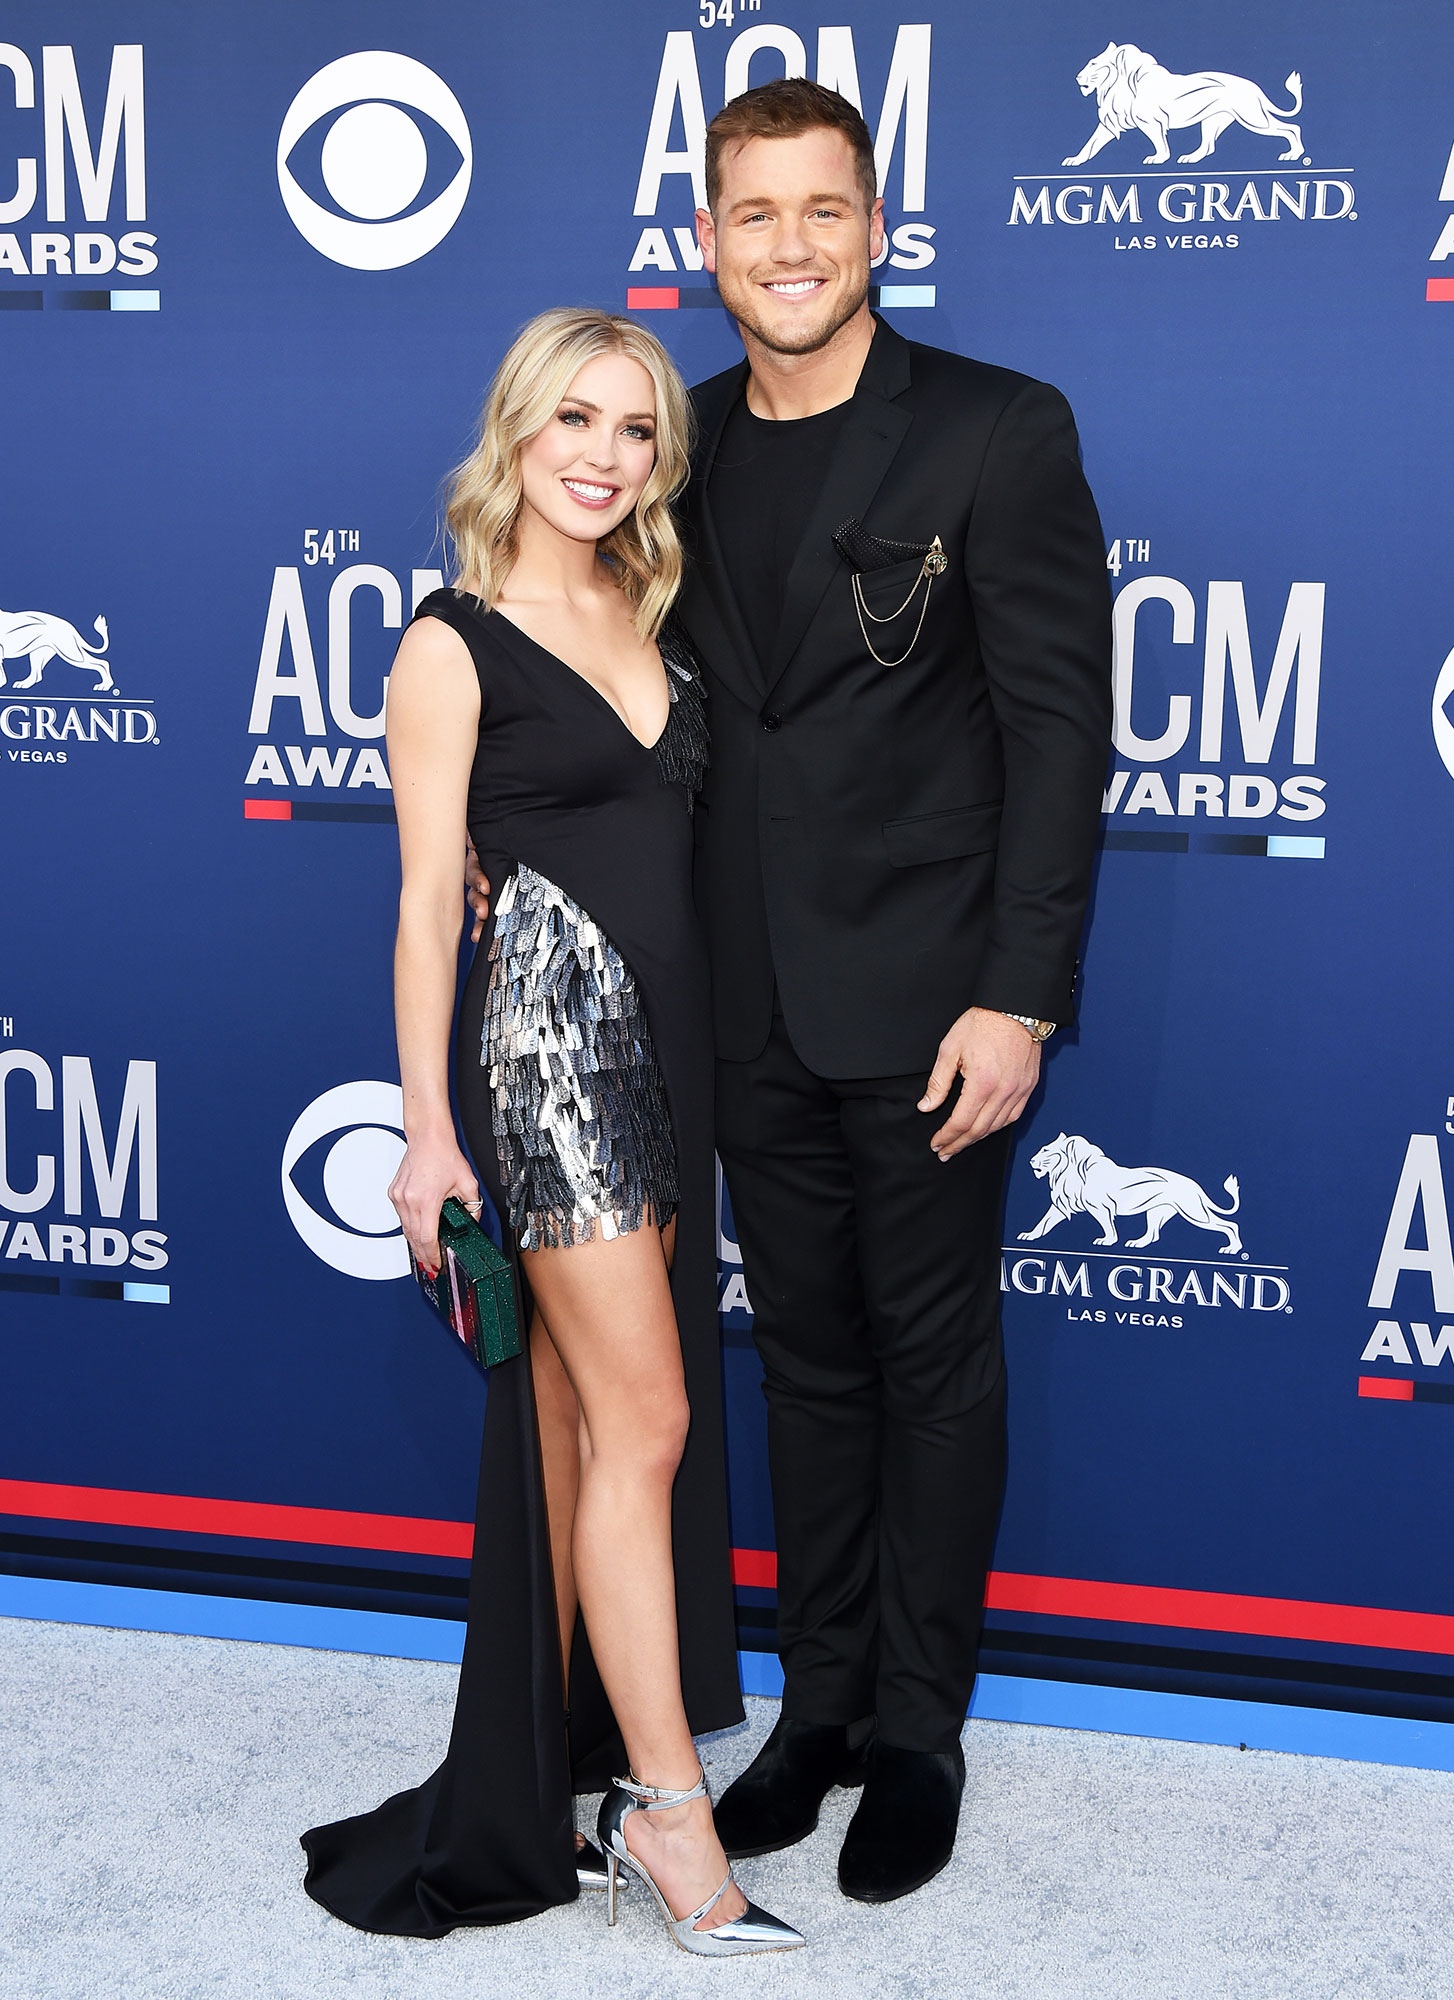 Smoking Hot Couples Style at the ACMs - The Bachelor alums looked like the perfect pair (sartorially speaking!) on the red carpet with Randolph in an asymmetrical Hamel gown, Aldo heels and Asos clutch and Underwood in an all-black-everything Ted Baker suit and To Boot New York shoes combo.